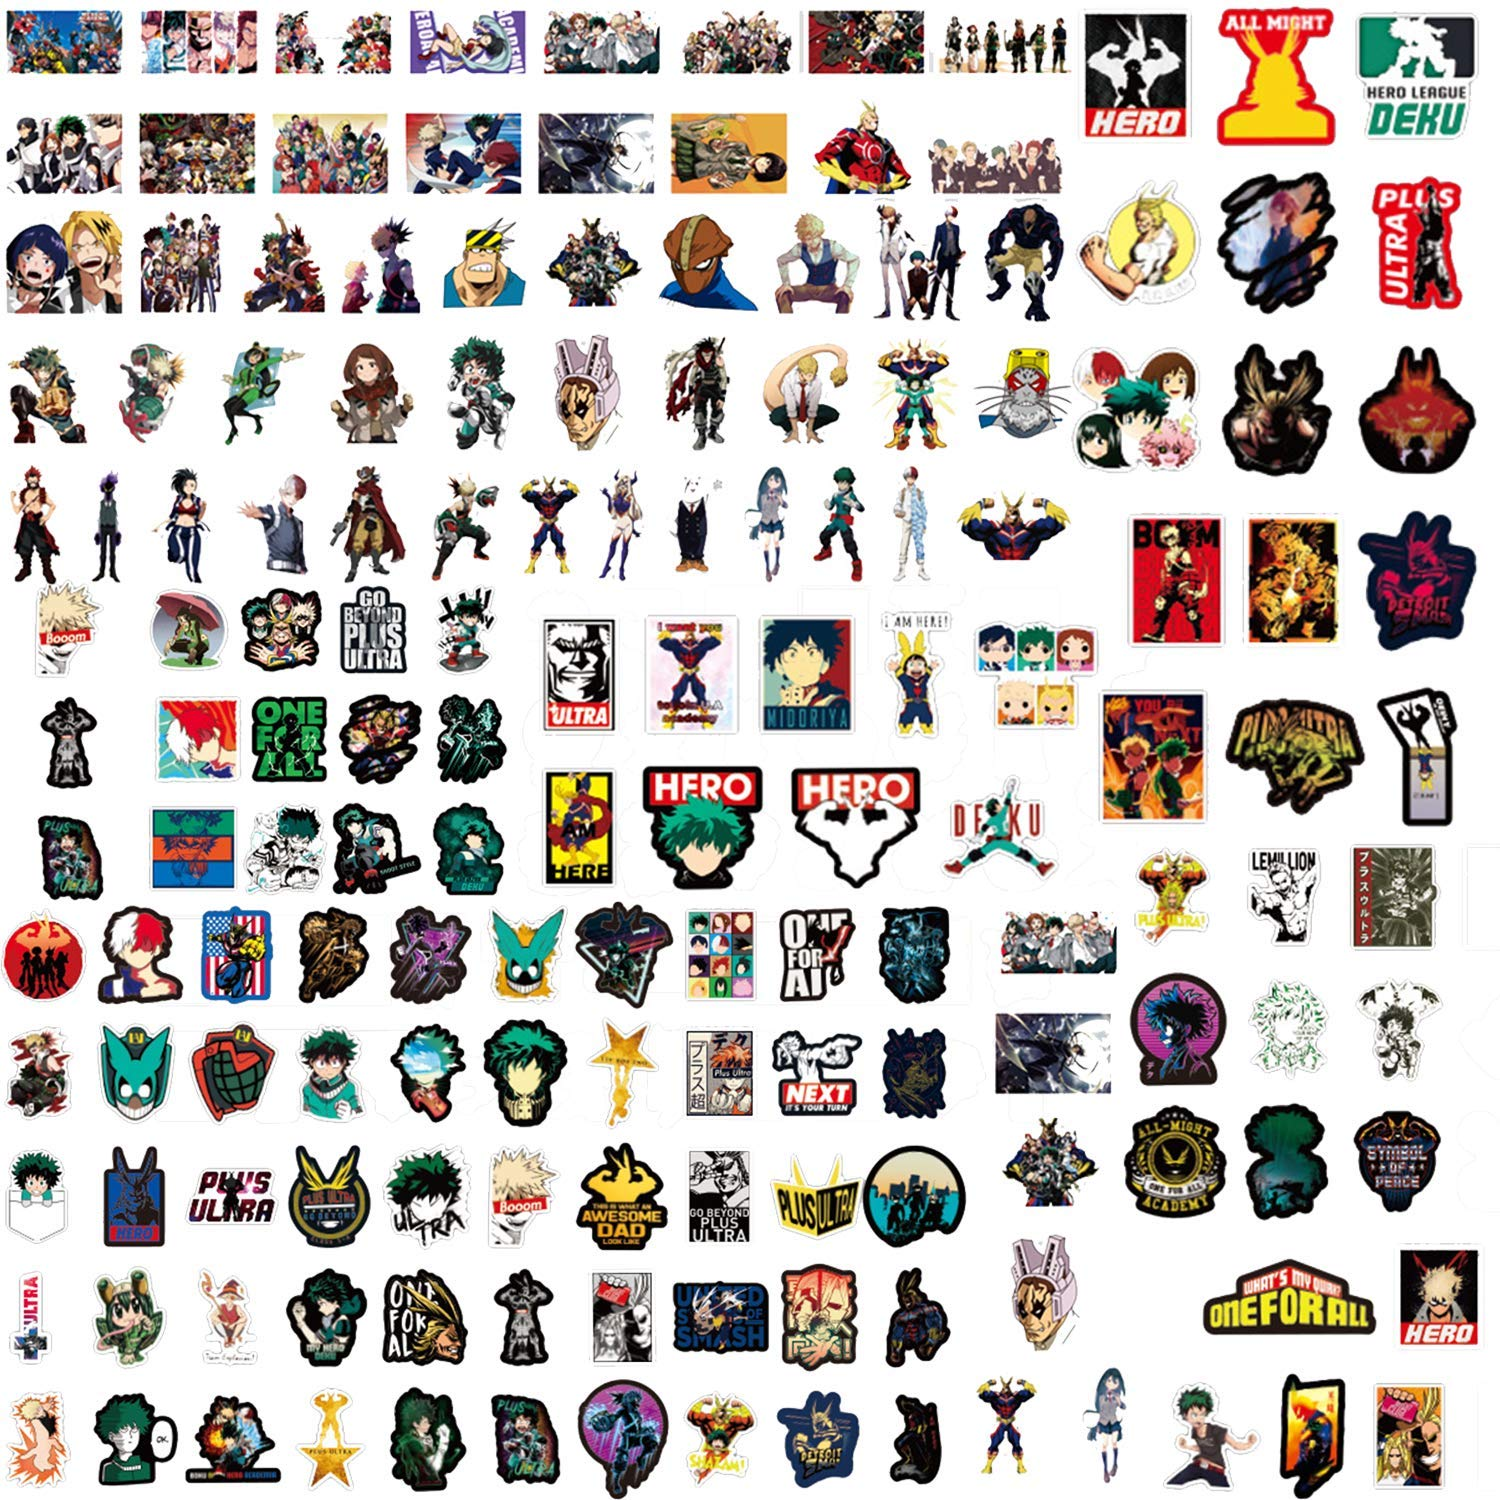 My Hero Academia Stickers,223 Pcs Waterproof Stickers Collectibles Car Snowboard Bicycle Luggage Phone Water Bottle Skateboard Stickers Anime Lover Gift